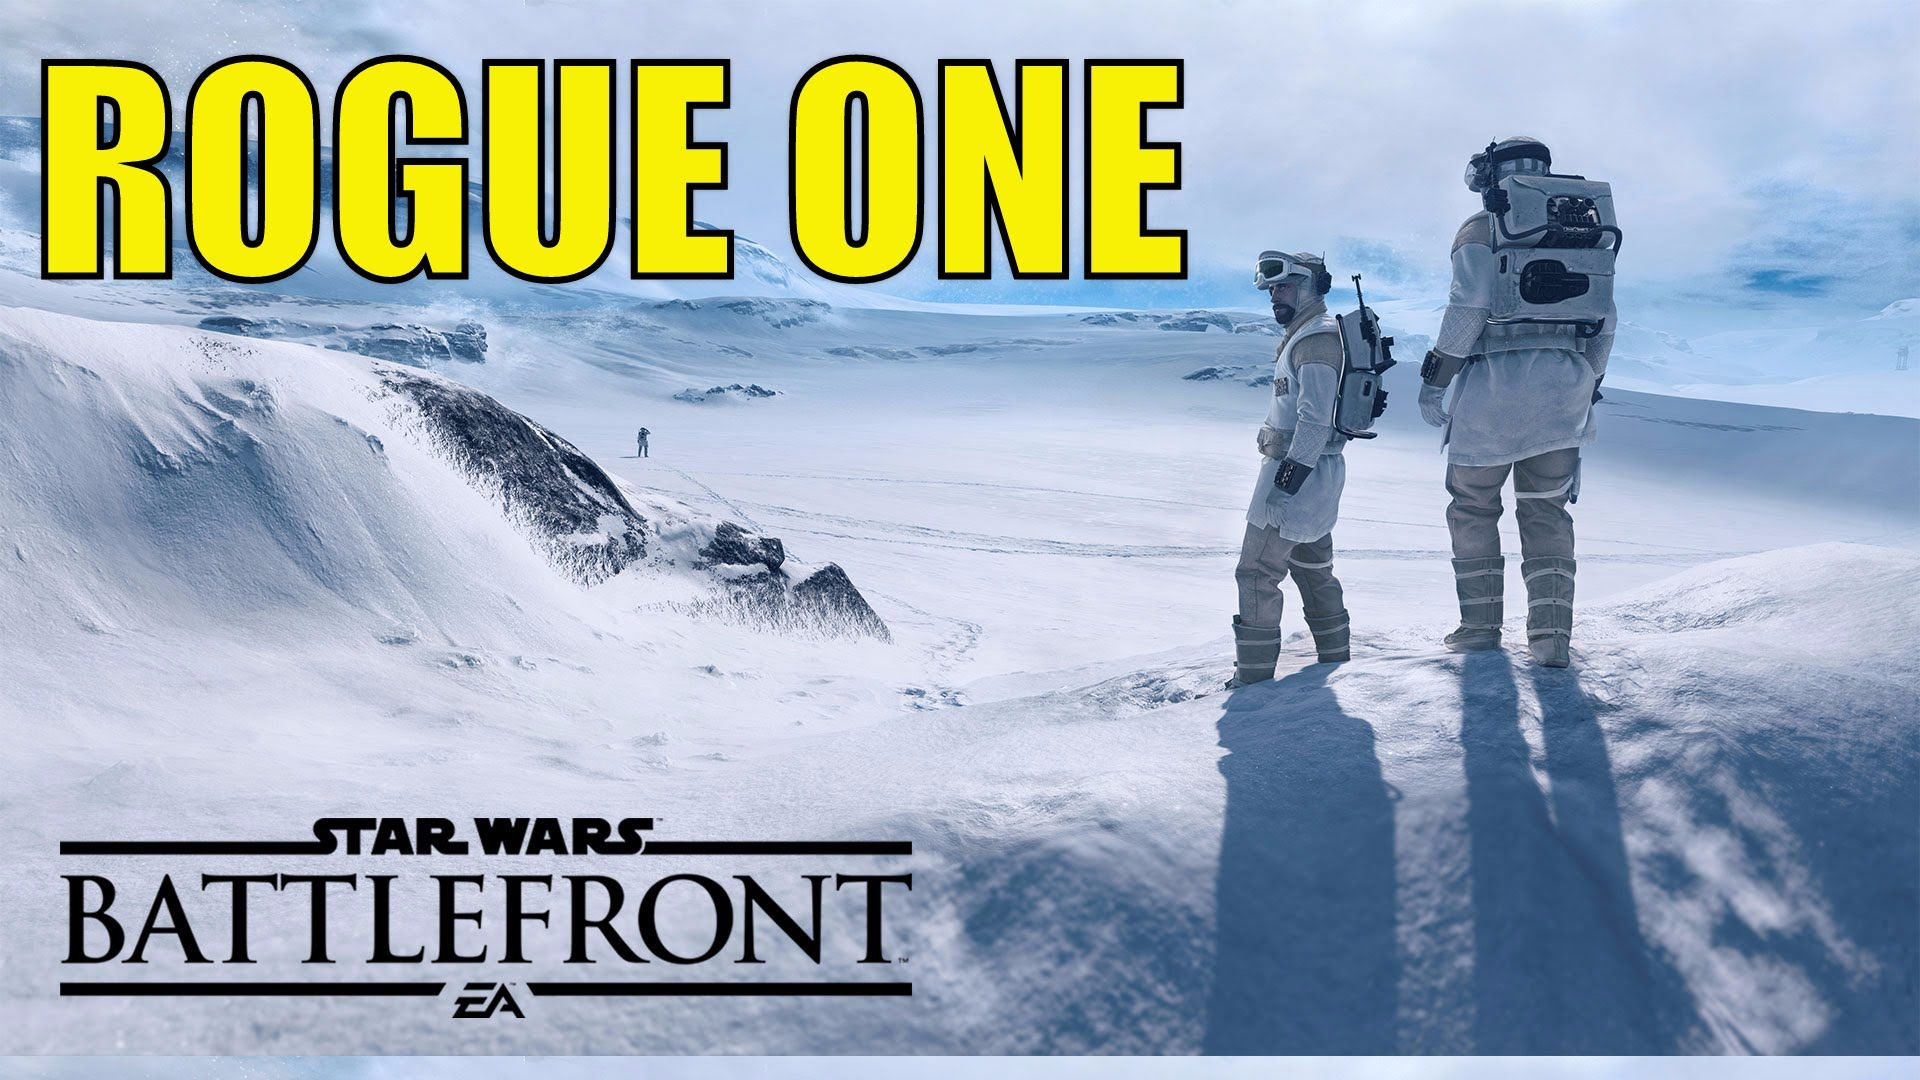 """ROGUE ONE TRAILER 2 THOUGHTS """"BATTLEFRONT GAME PLAY"""""""